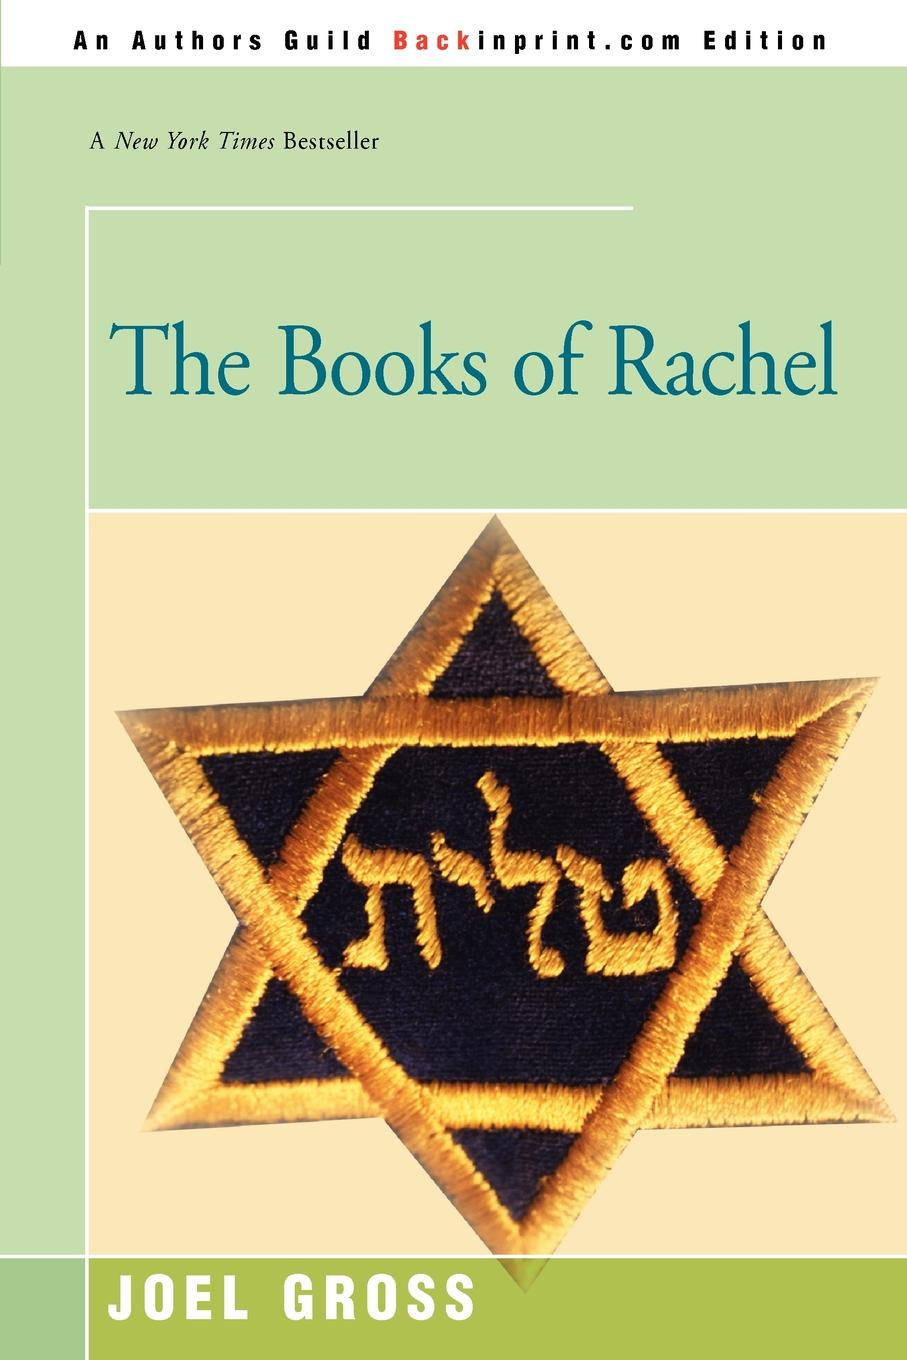 The Books of Rachel. Joel Gross